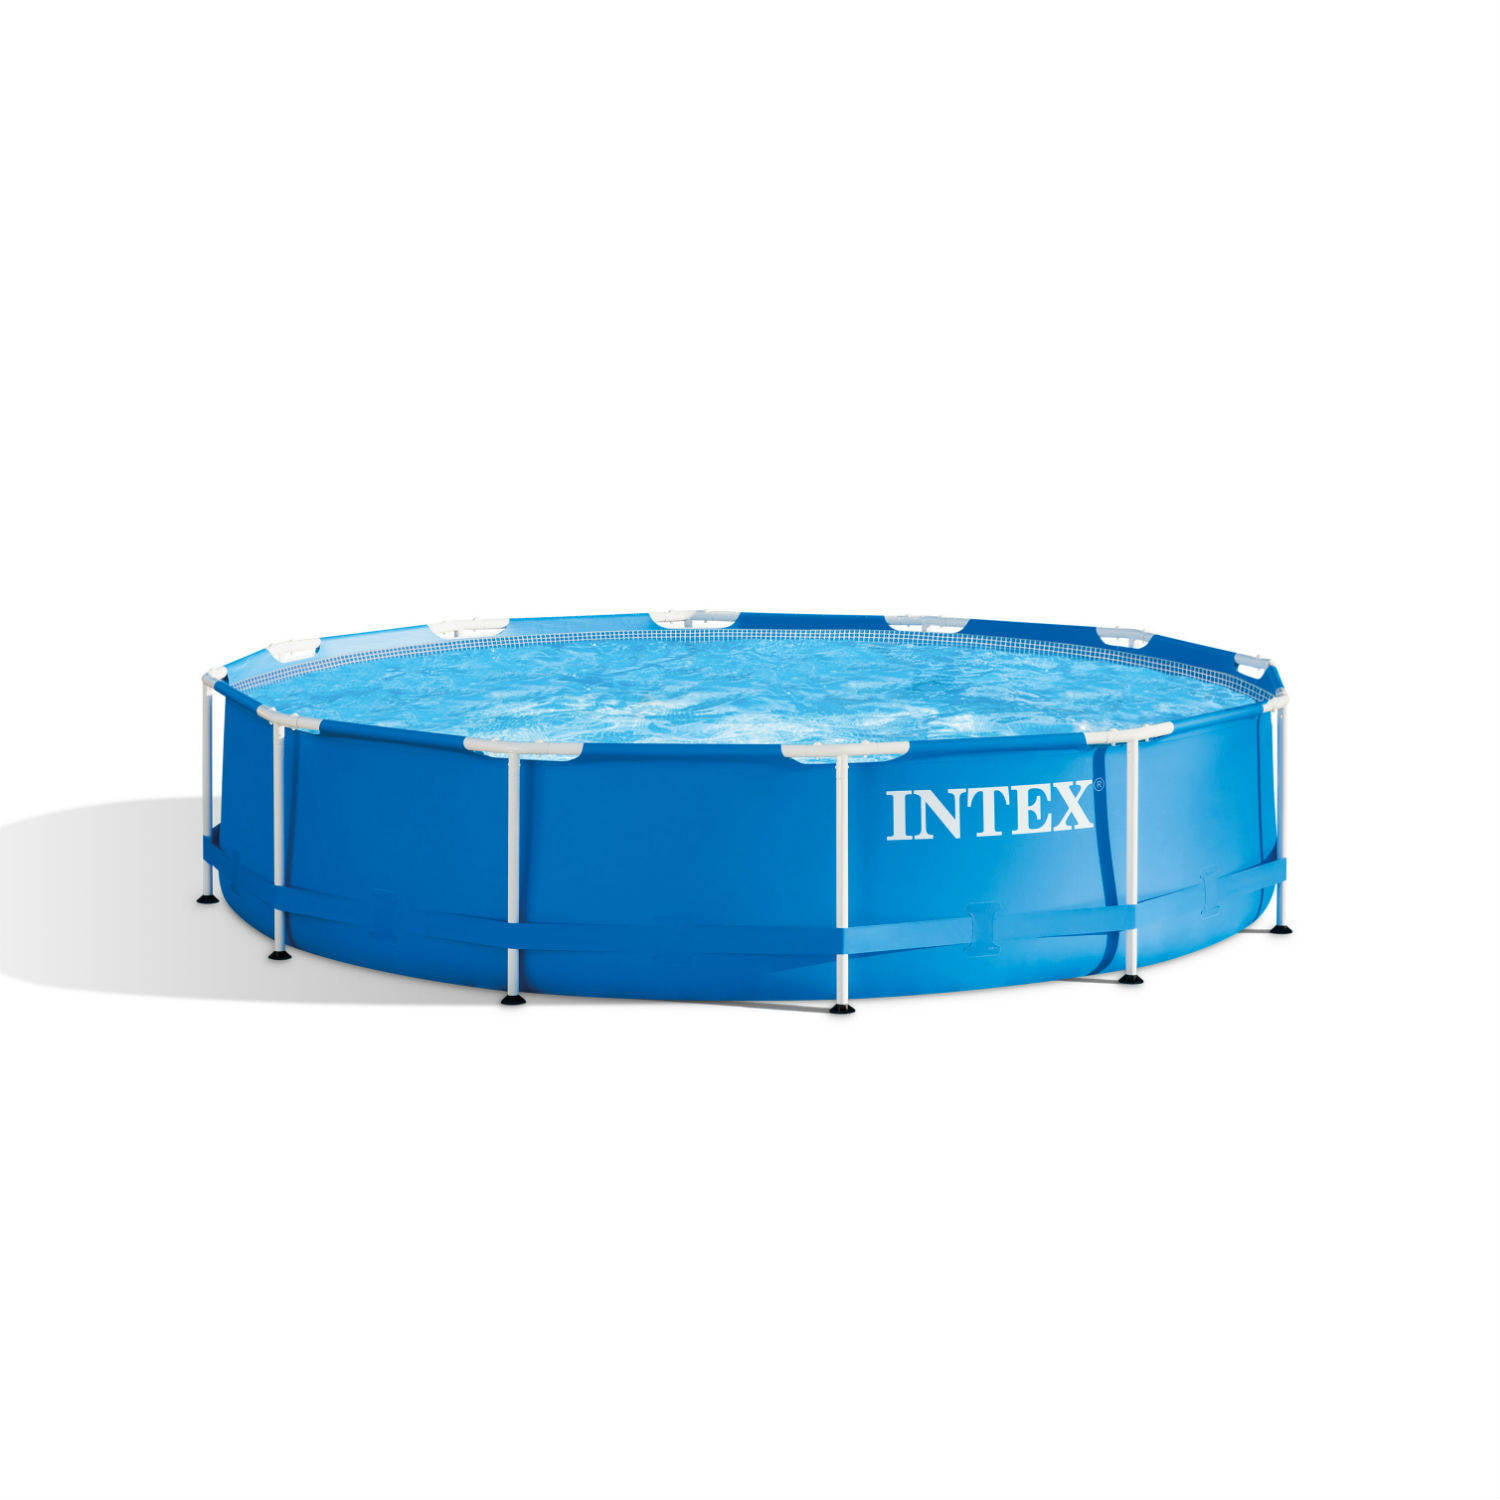 "Intex 12' x 30"" Metal Frame Above Ground Pool with Filter Pump"